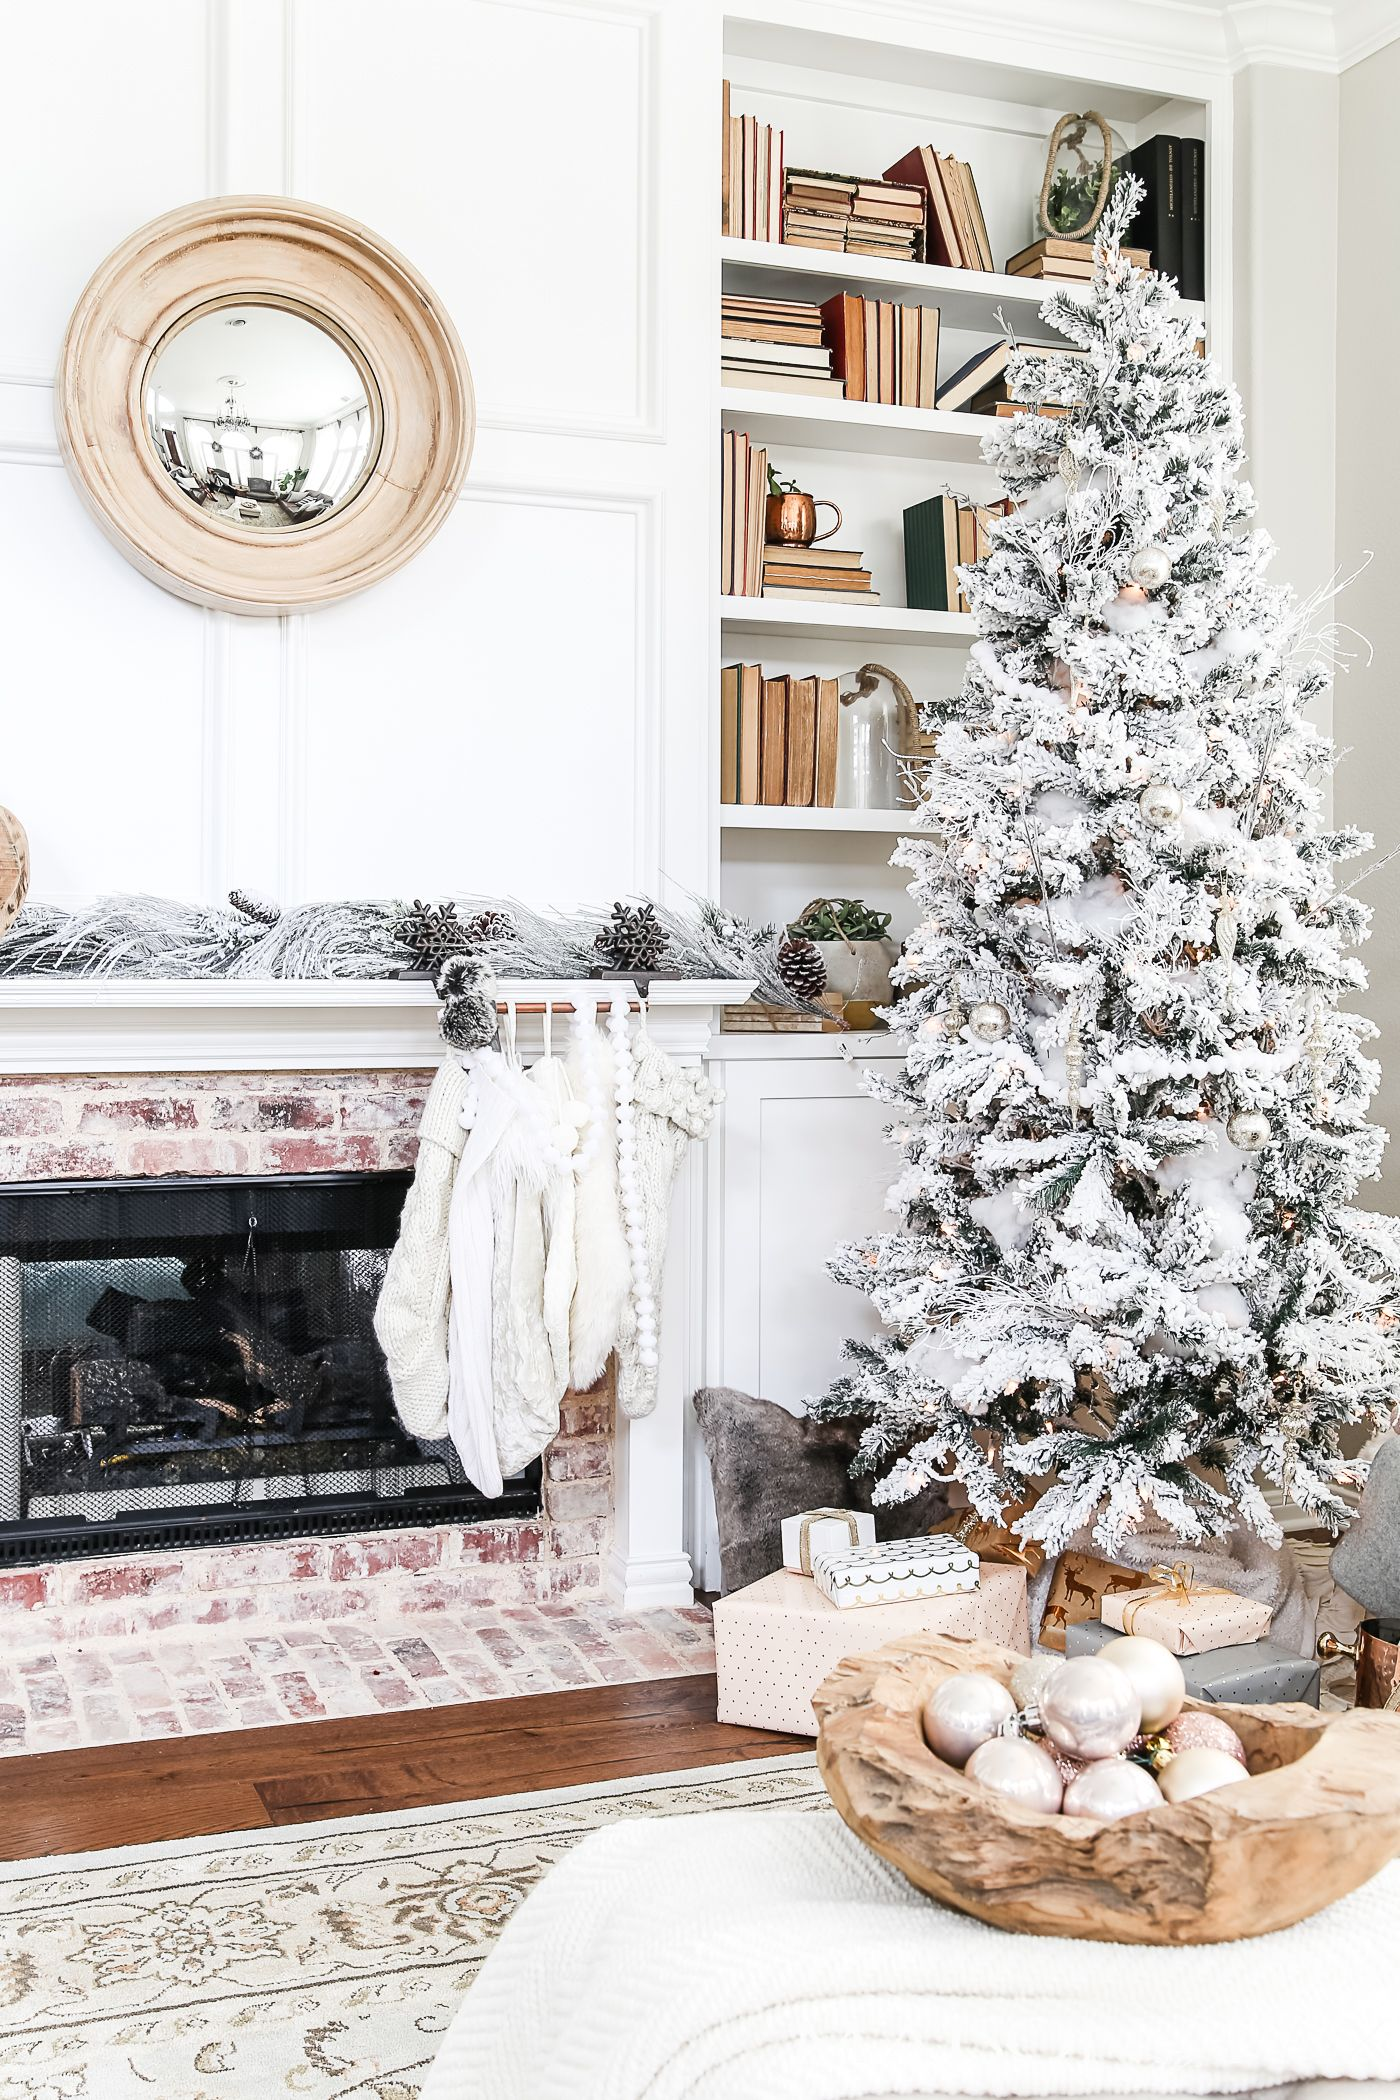 Junk Decorating Home Ideas Part - 43: Simple Holiday Decorating: Christmas Home Tour